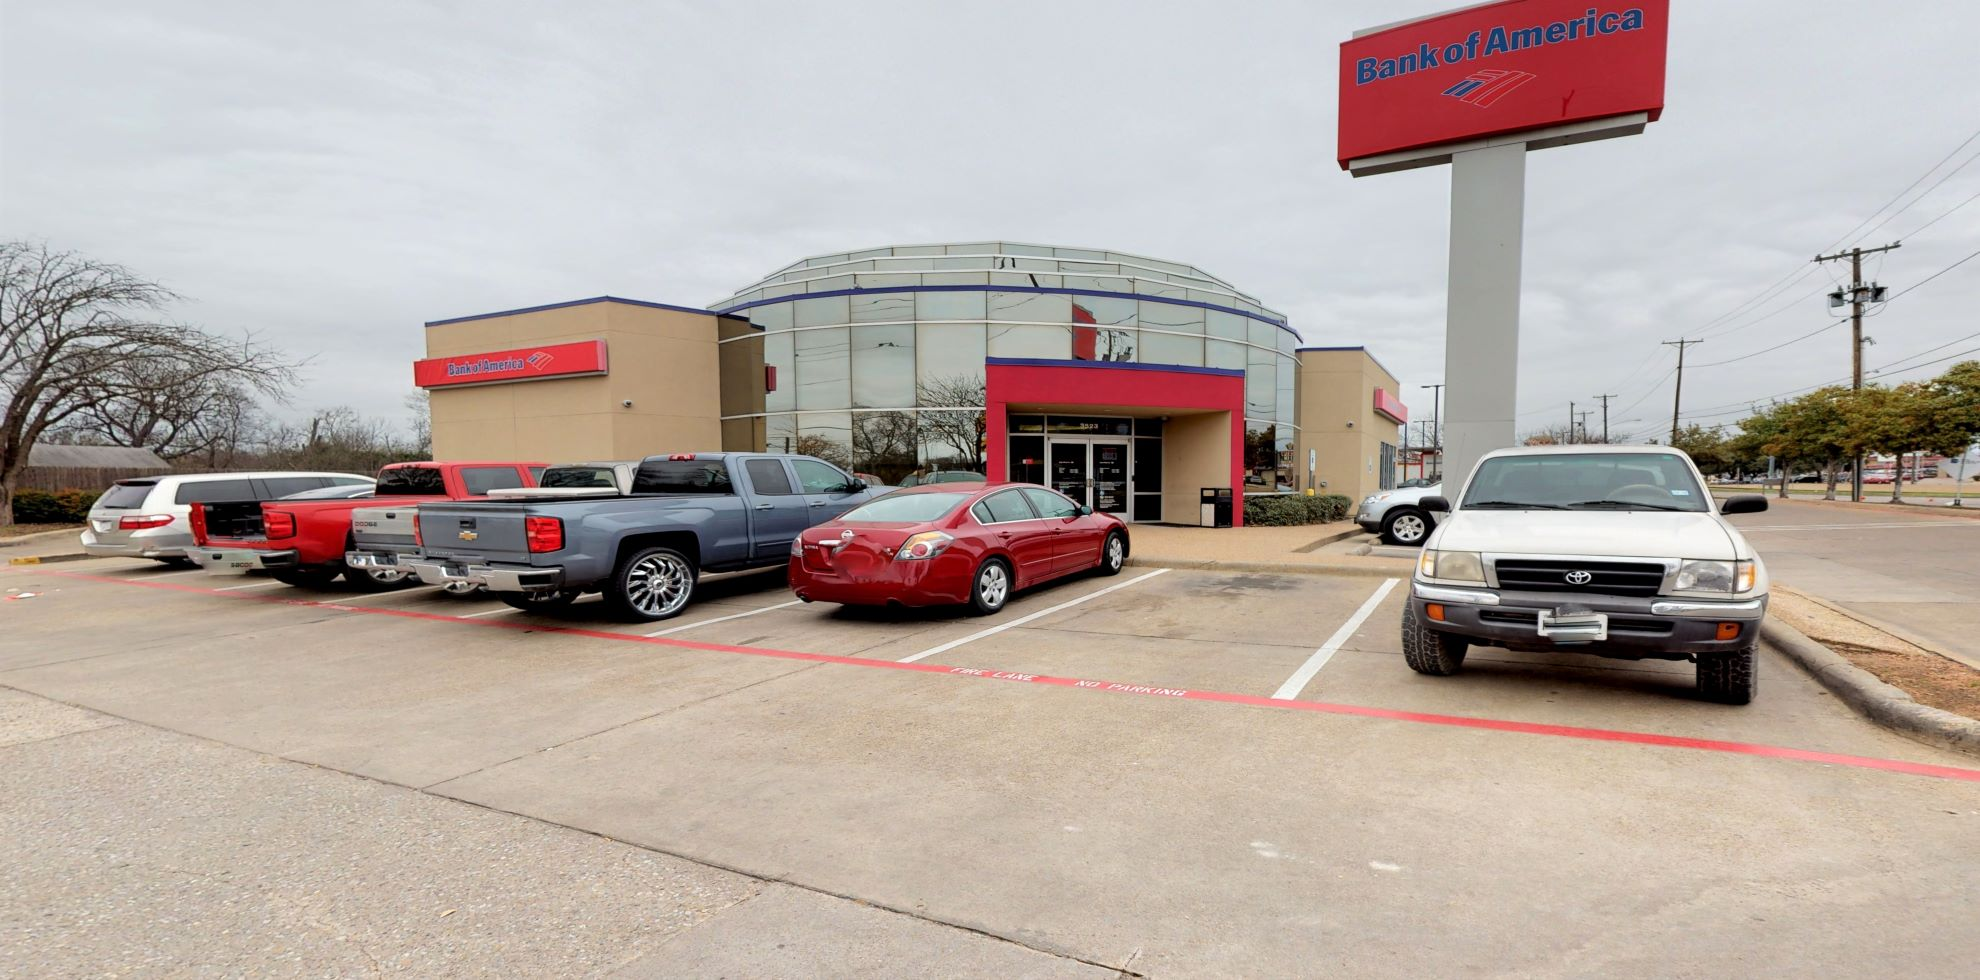 Bank of America financial center with drive-thru ATM   3523 S Lancaster Rd, Dallas, TX 75216